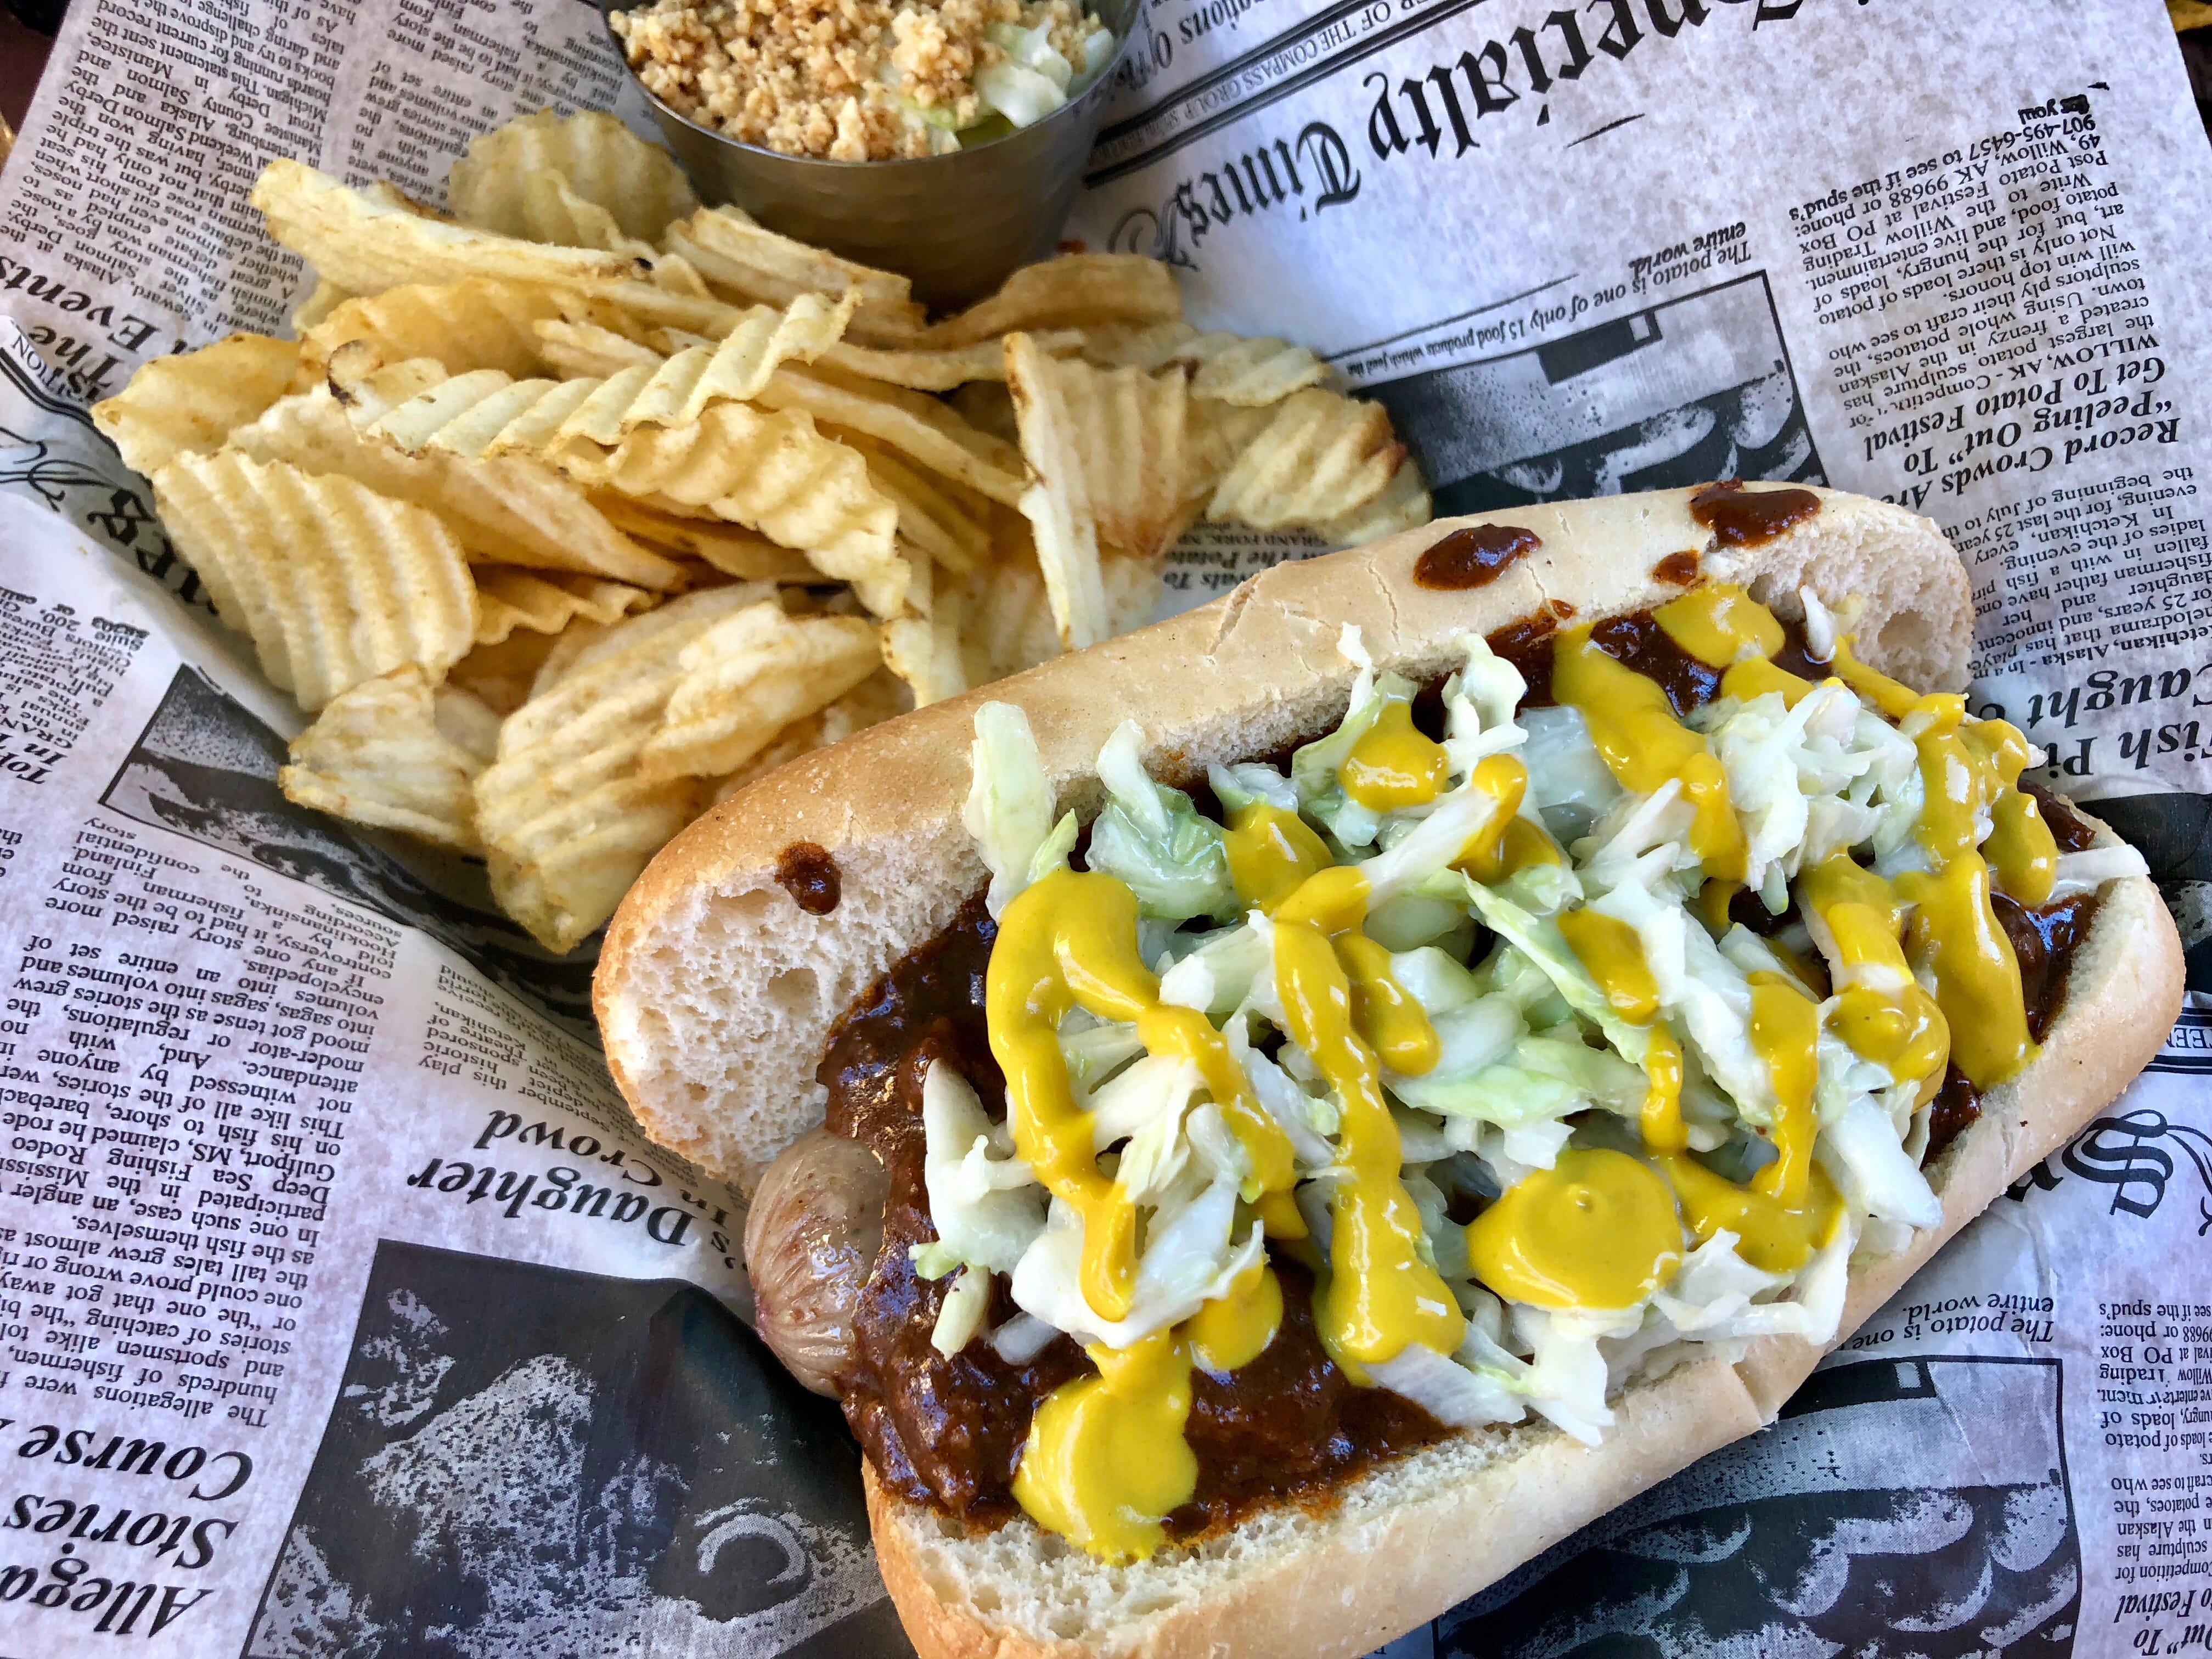 A Carolina slaw dog — coleslaw, chili and mustard atop a Guinness-infused hot dog — at Southern Latitudes